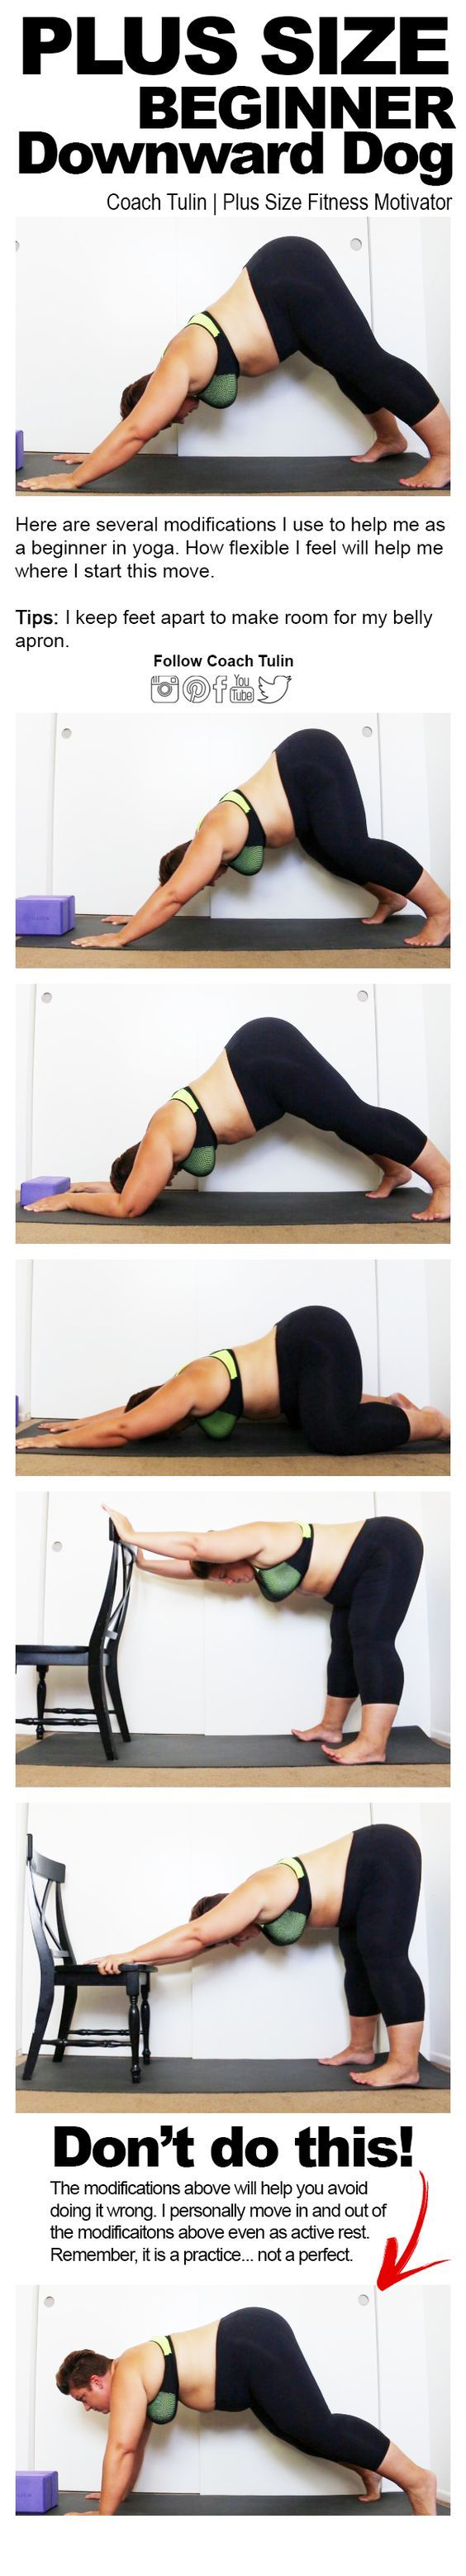 As a plus size beginner in yoga, modifications are necessary. I struggled with Downward Facing Dog yoga pose and needed heavy modification. I also need to find a place for my belly to go as it would get my way if I didn't keep my legs apart. The good news is, I keep getting better! Join my Plus Size Beginners Yoga Group.: